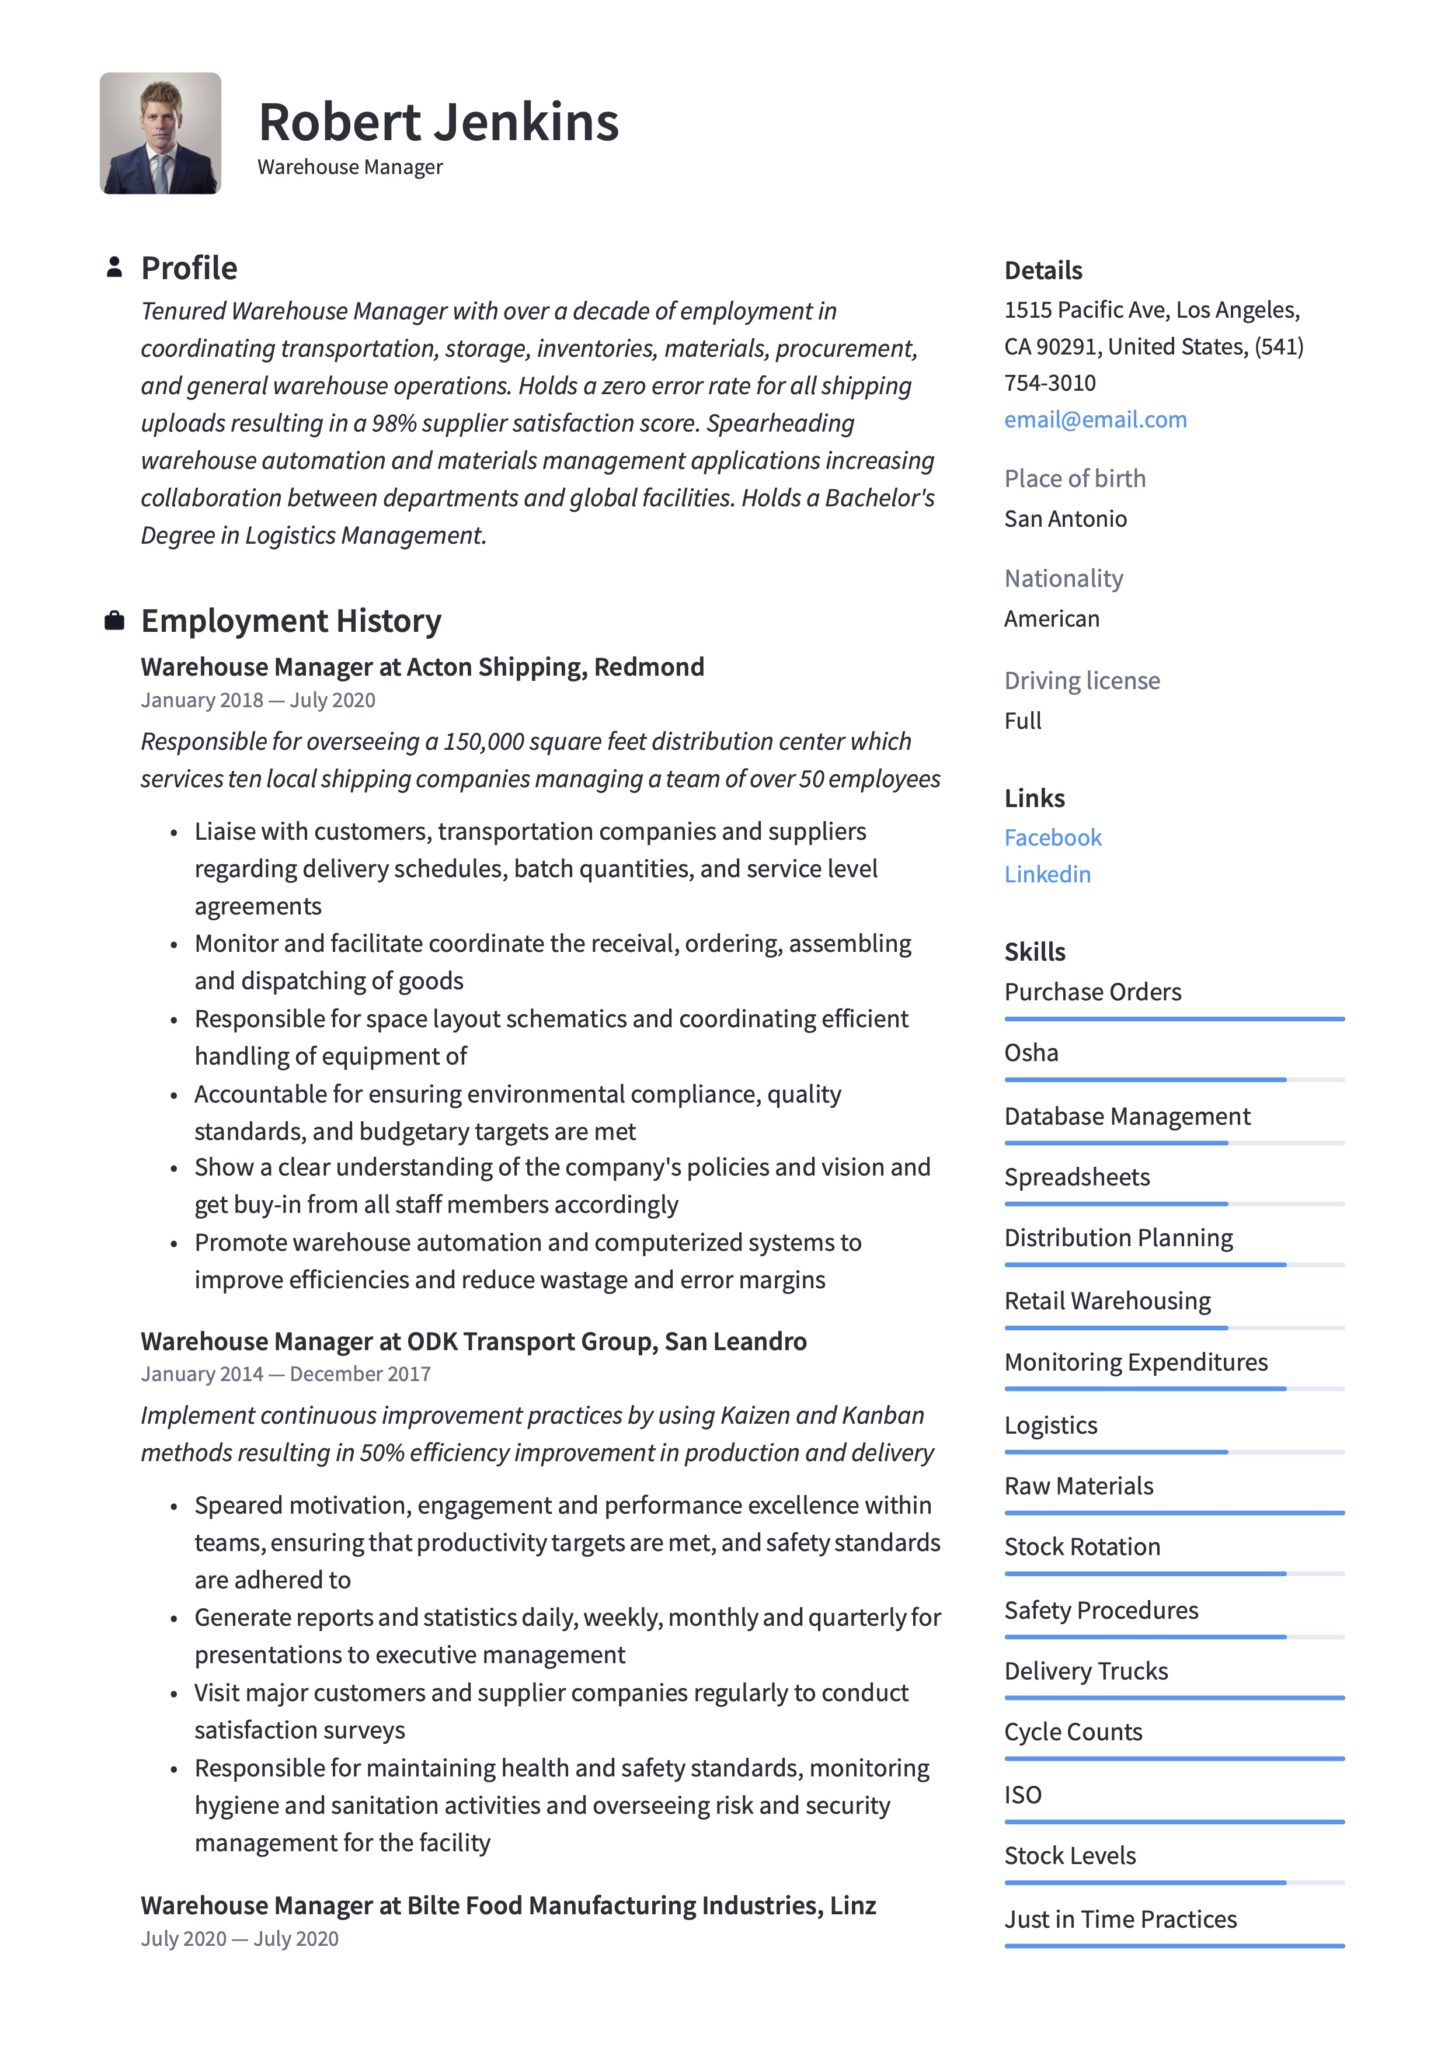 warehouse manager resume writing guide templates management score scaled maker software Resume Management Score Resume